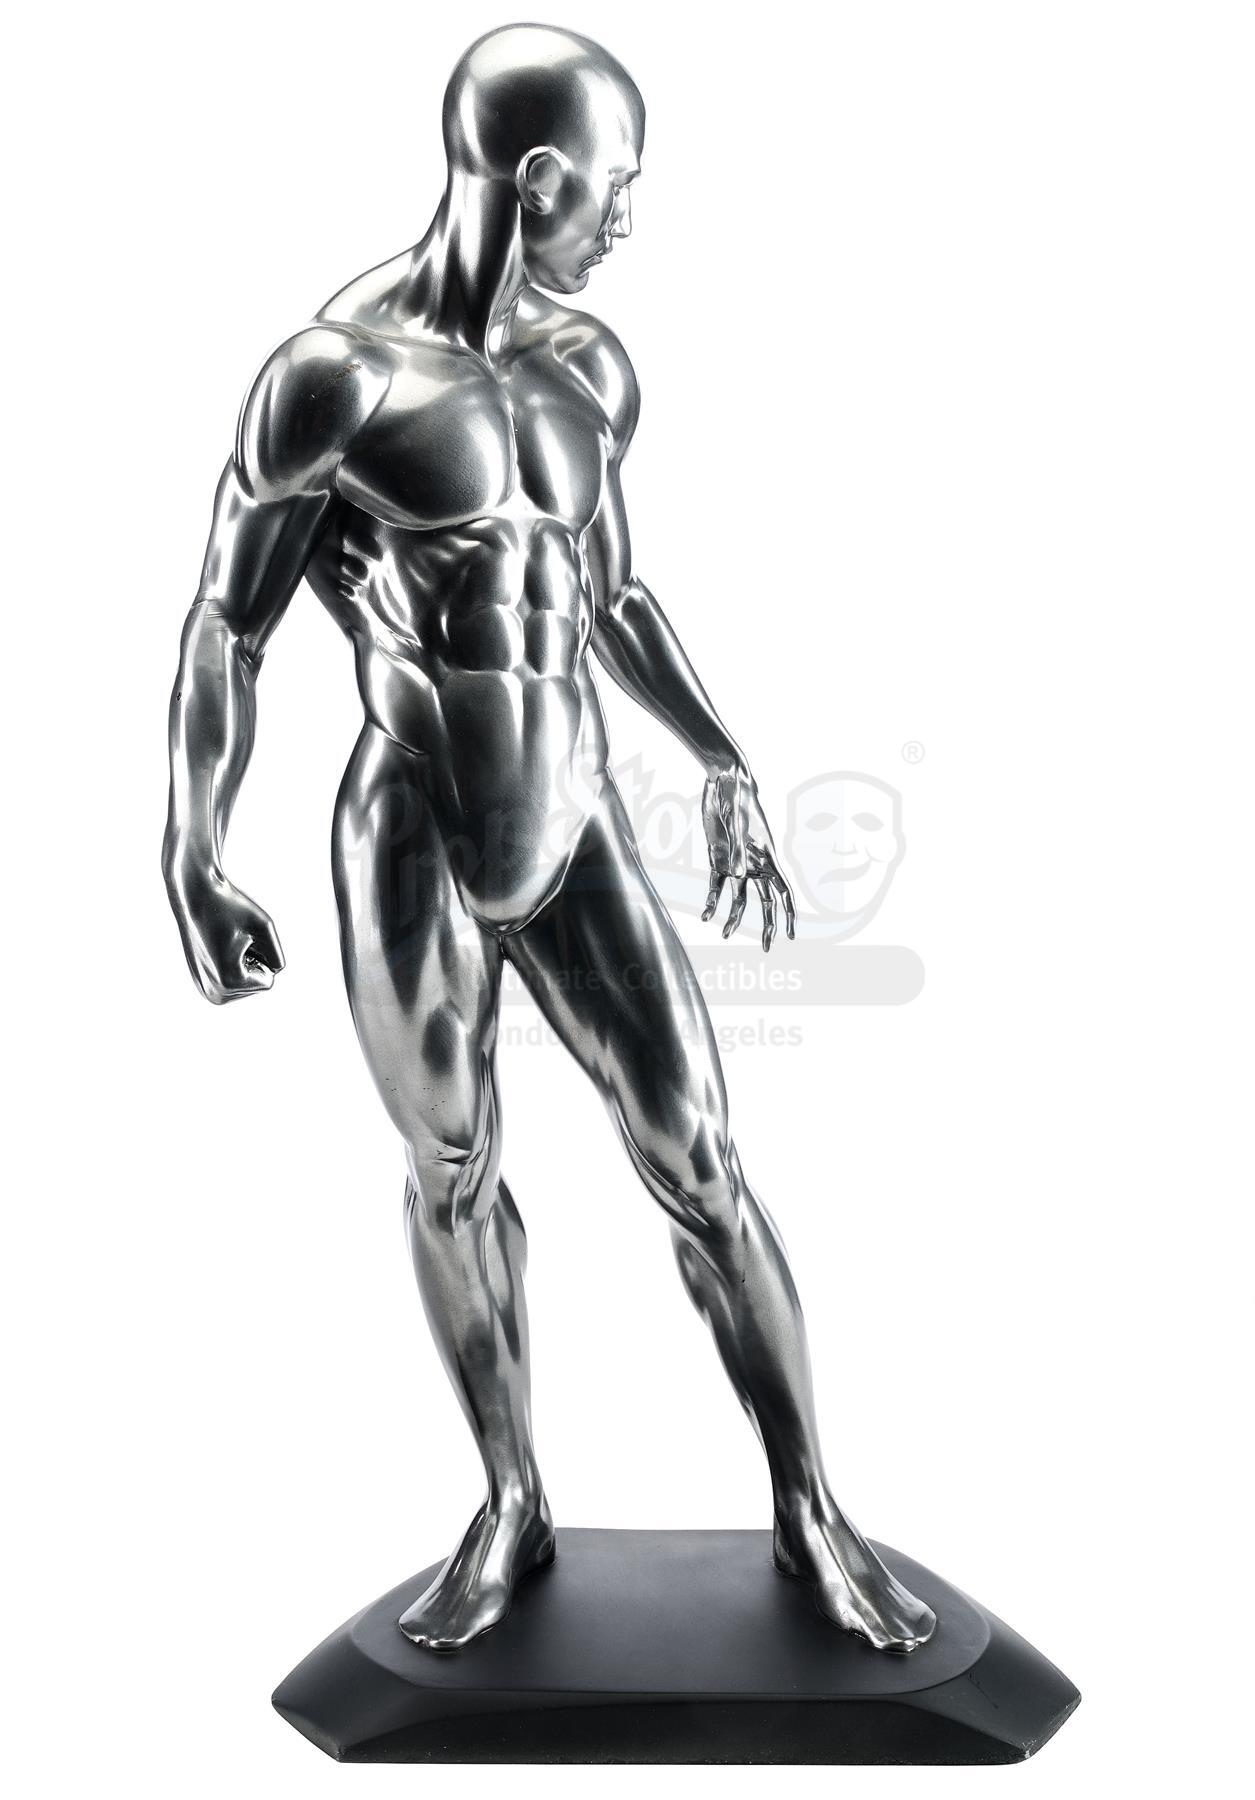 Lot # 660: FANTASTIC 4: RISE OF THE SILVER SURFER - Silver Surfer (Doug Jones) Reference Maquette